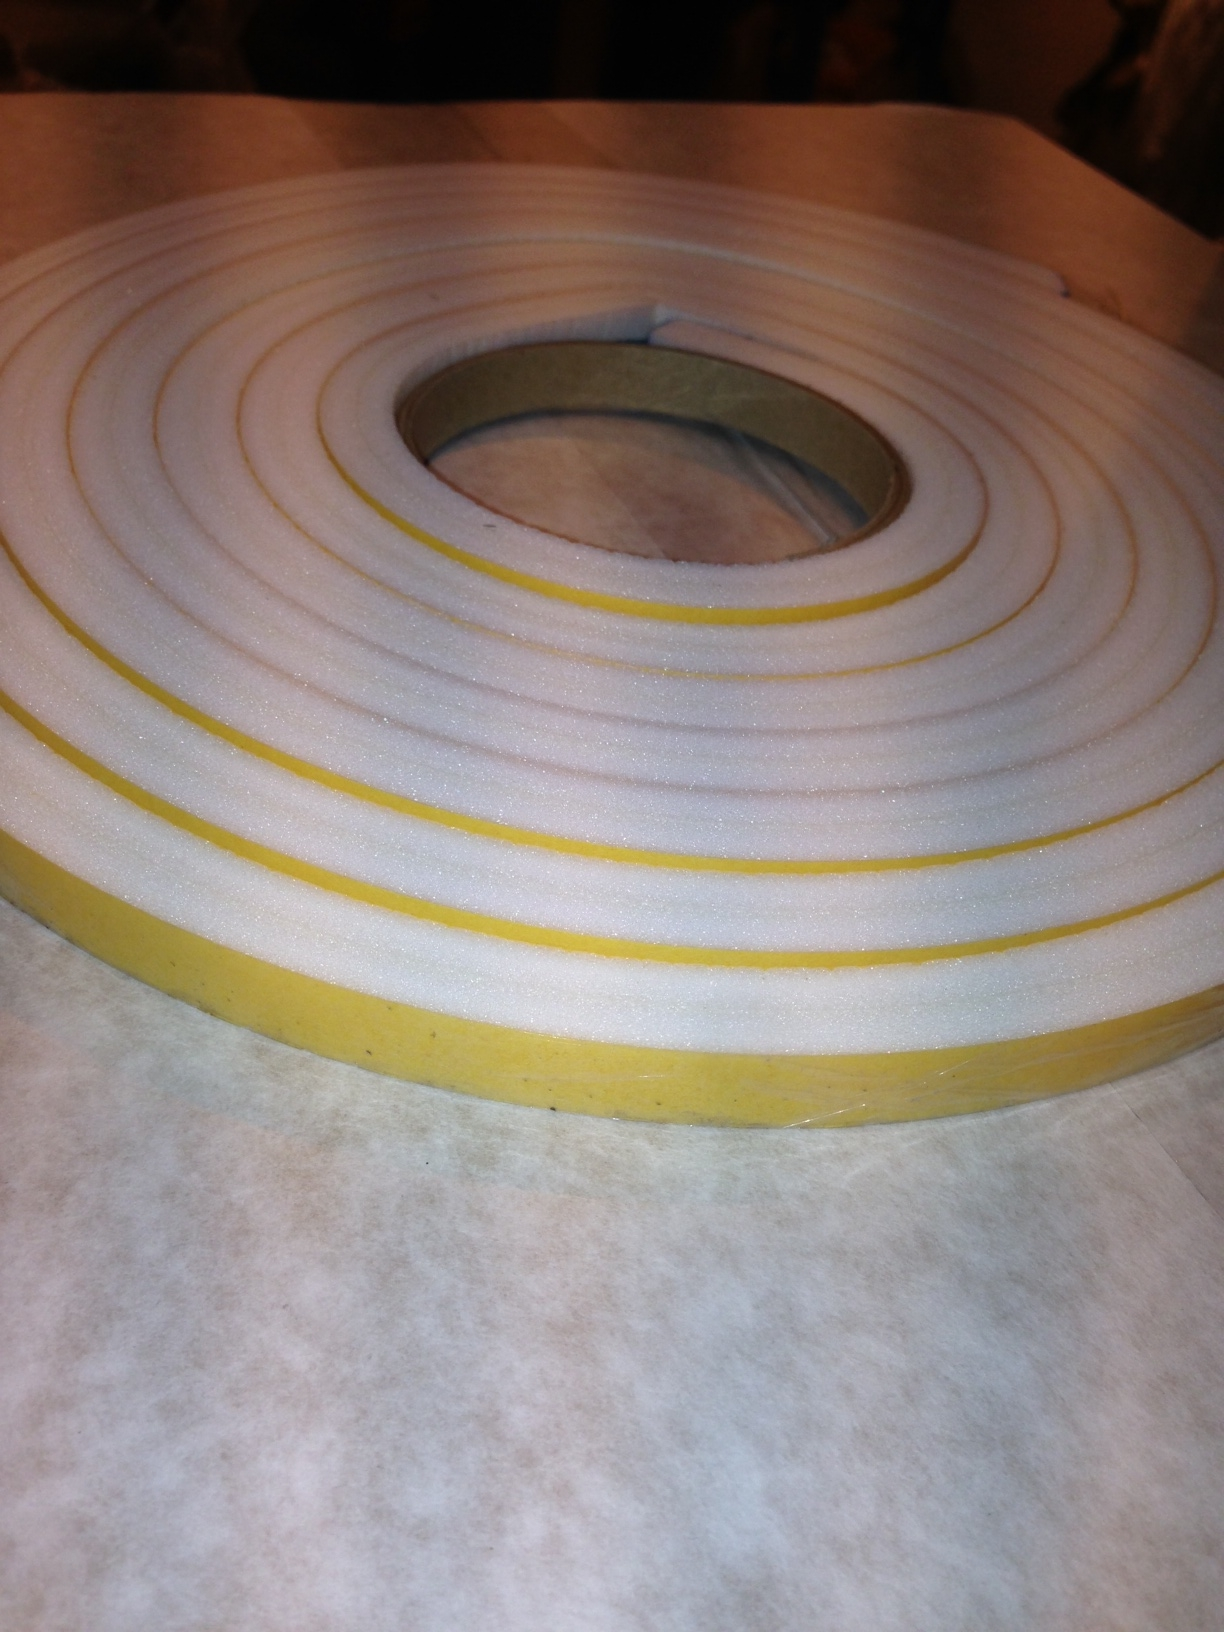 12mm x 12mm x 4m - CO 2836 Foam Sealing Tape S/S Ras76101